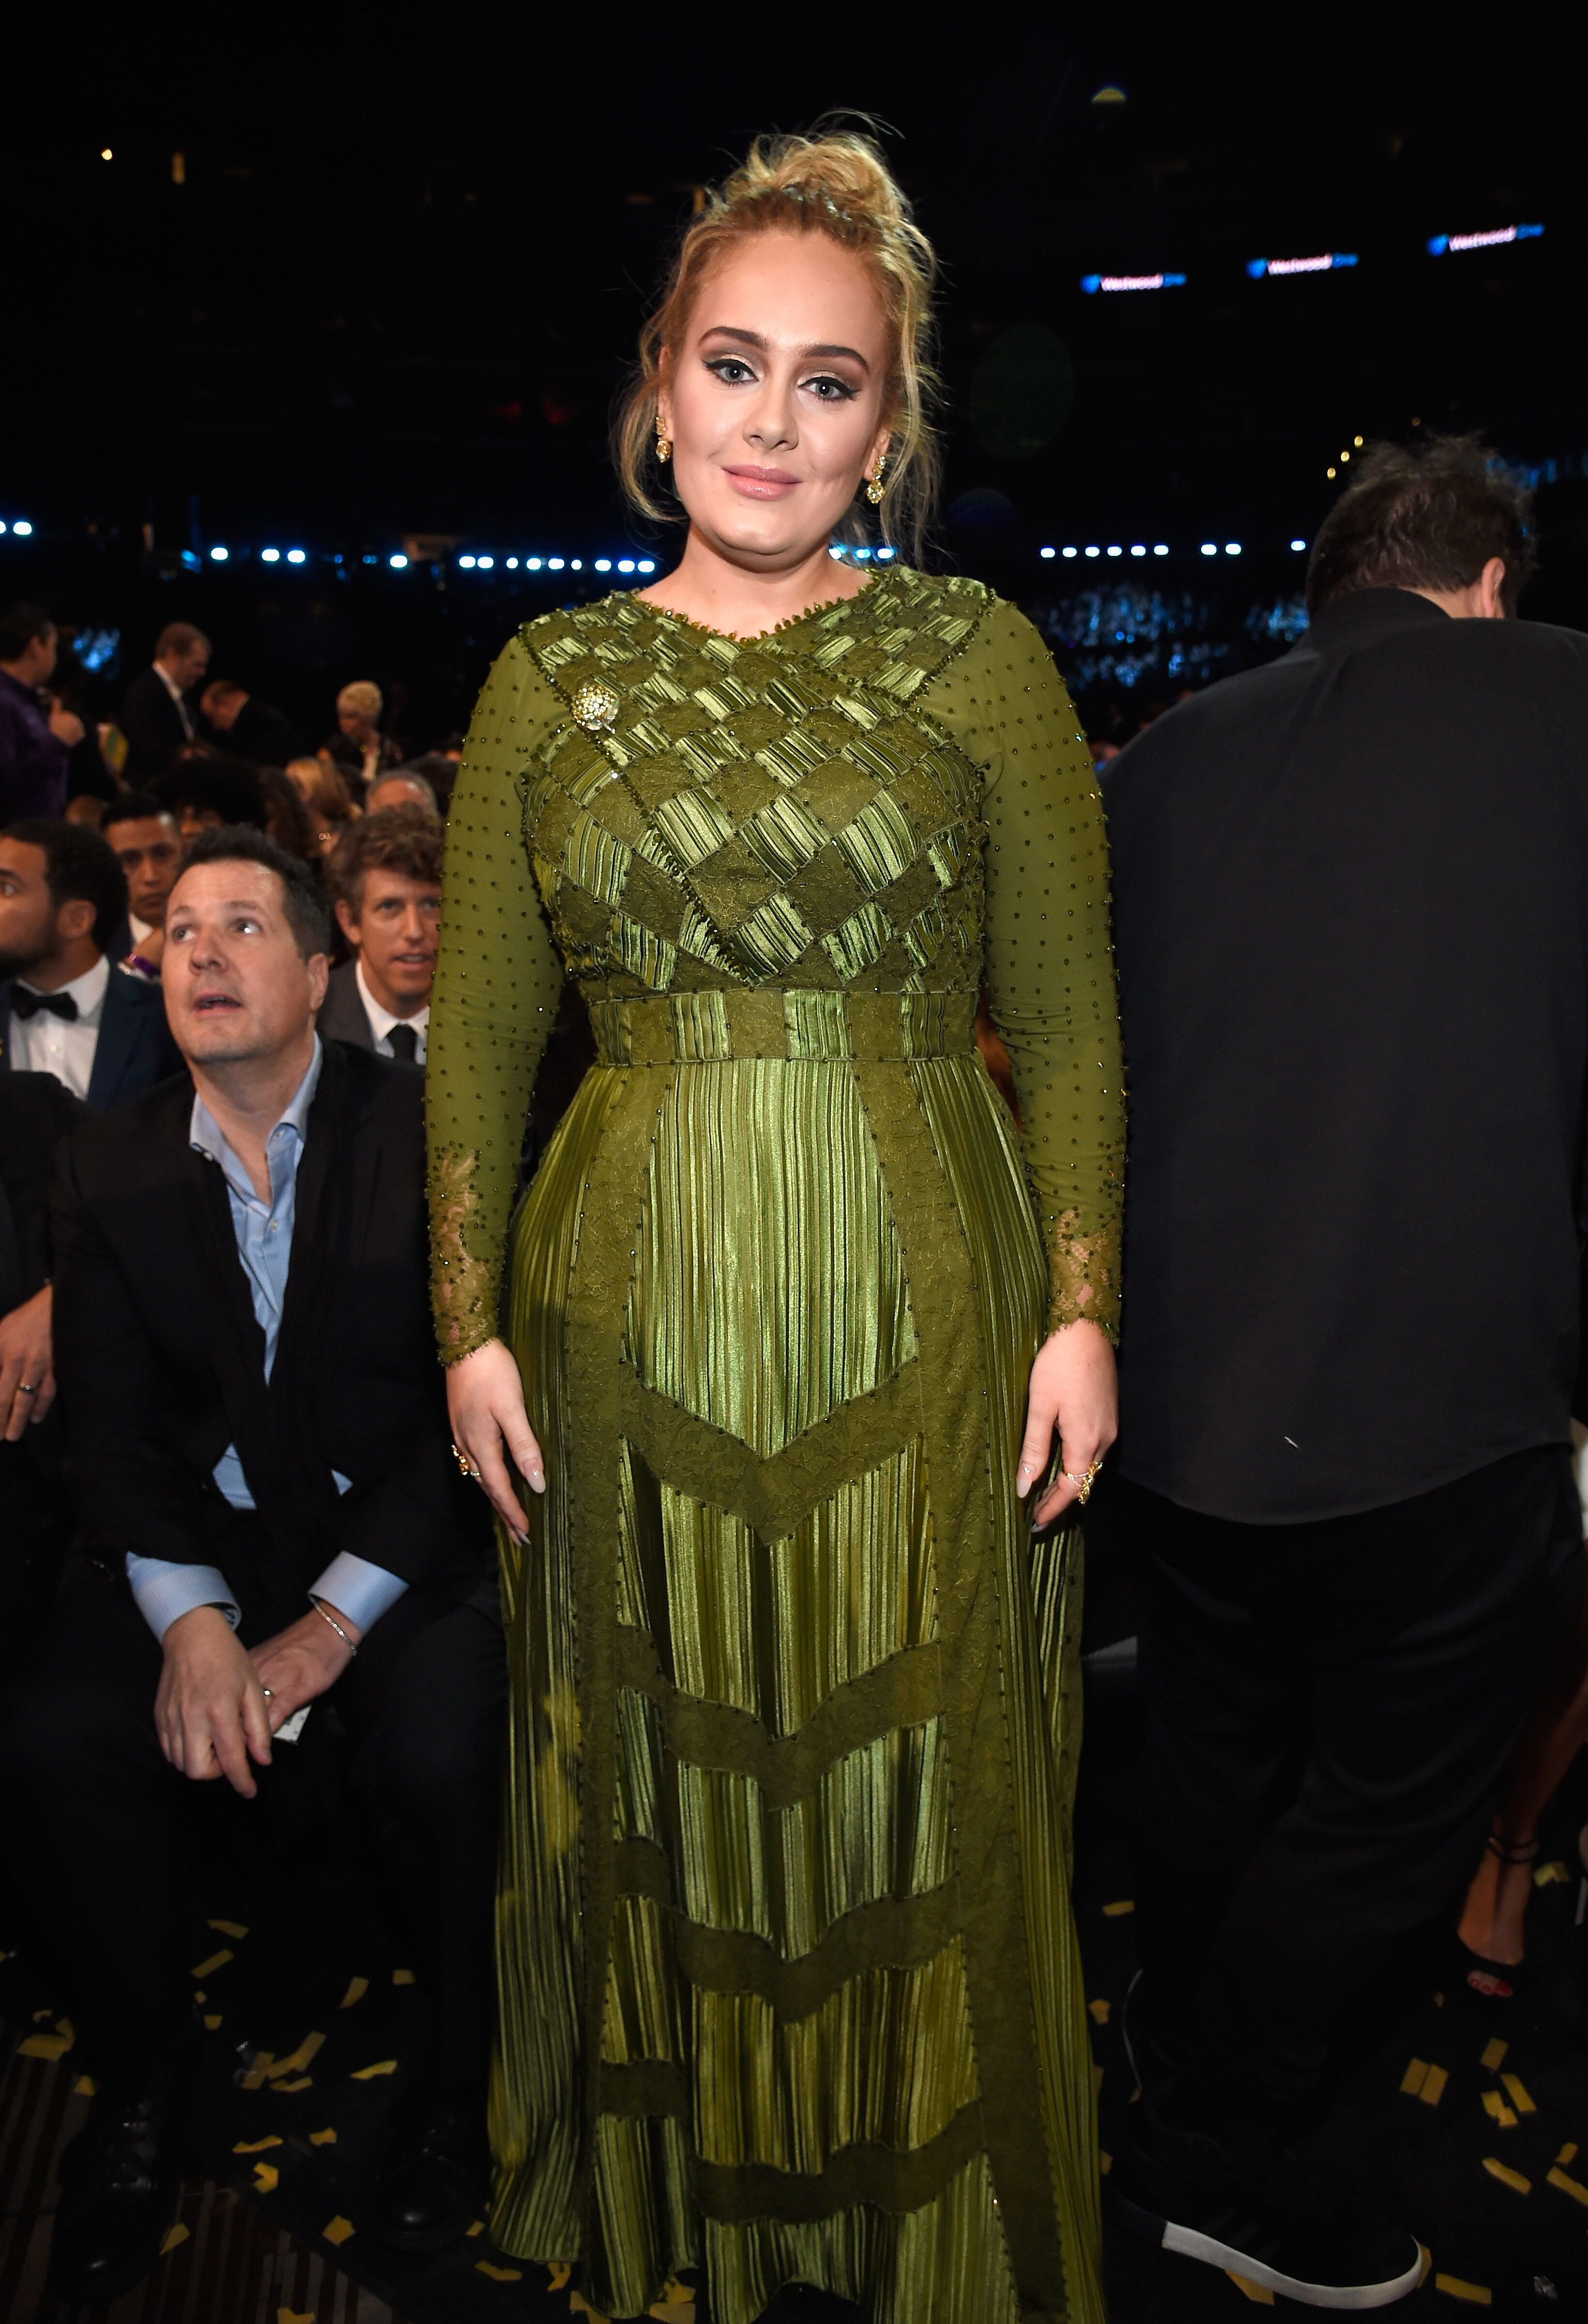 Adele during The 59th GRAMMY Awards at STAPLES Center on February 12, 2017 in Los Angeles, California.   Source: Getty Images